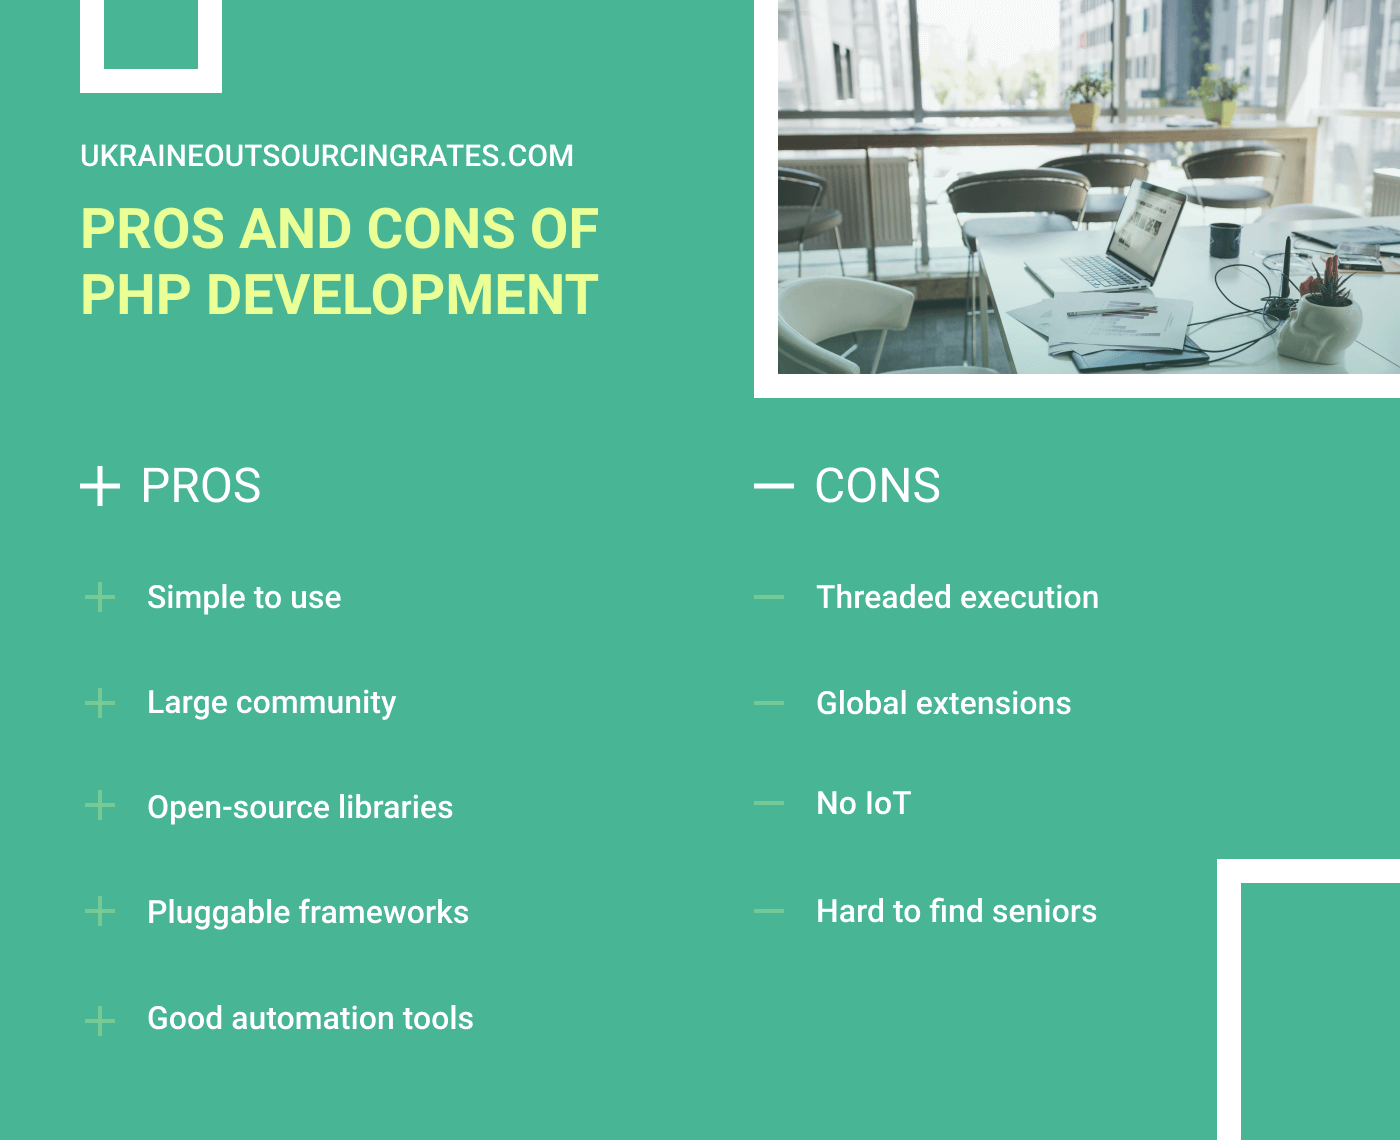 pros and cons of php development